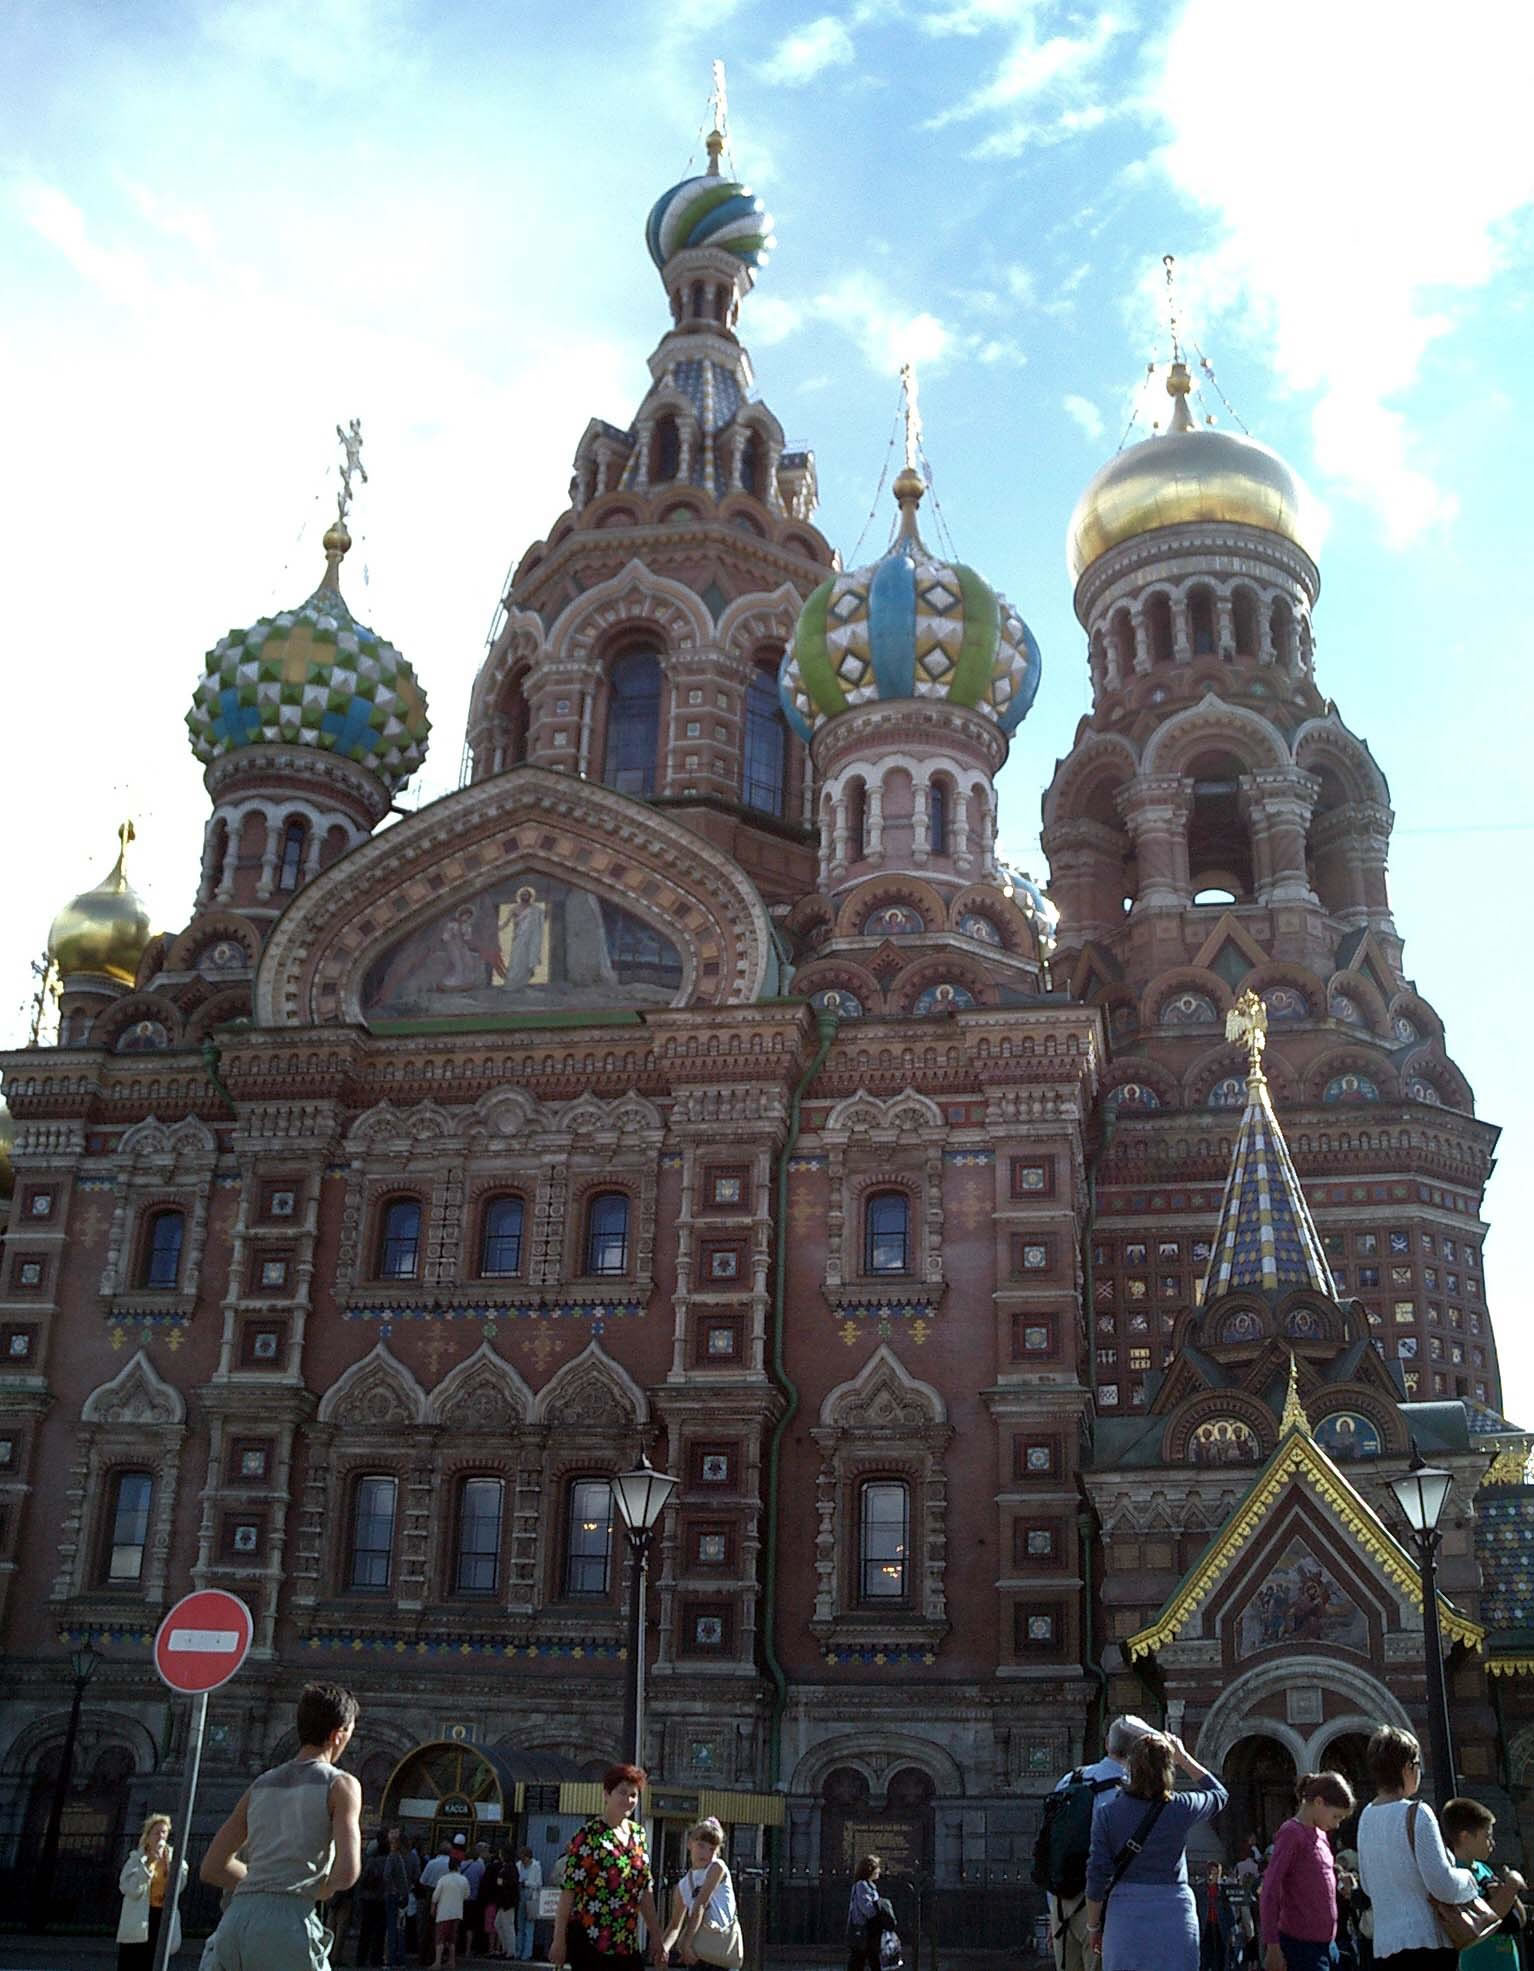 St Petersburg Architecture Church of the Savior on Blood 2005 17